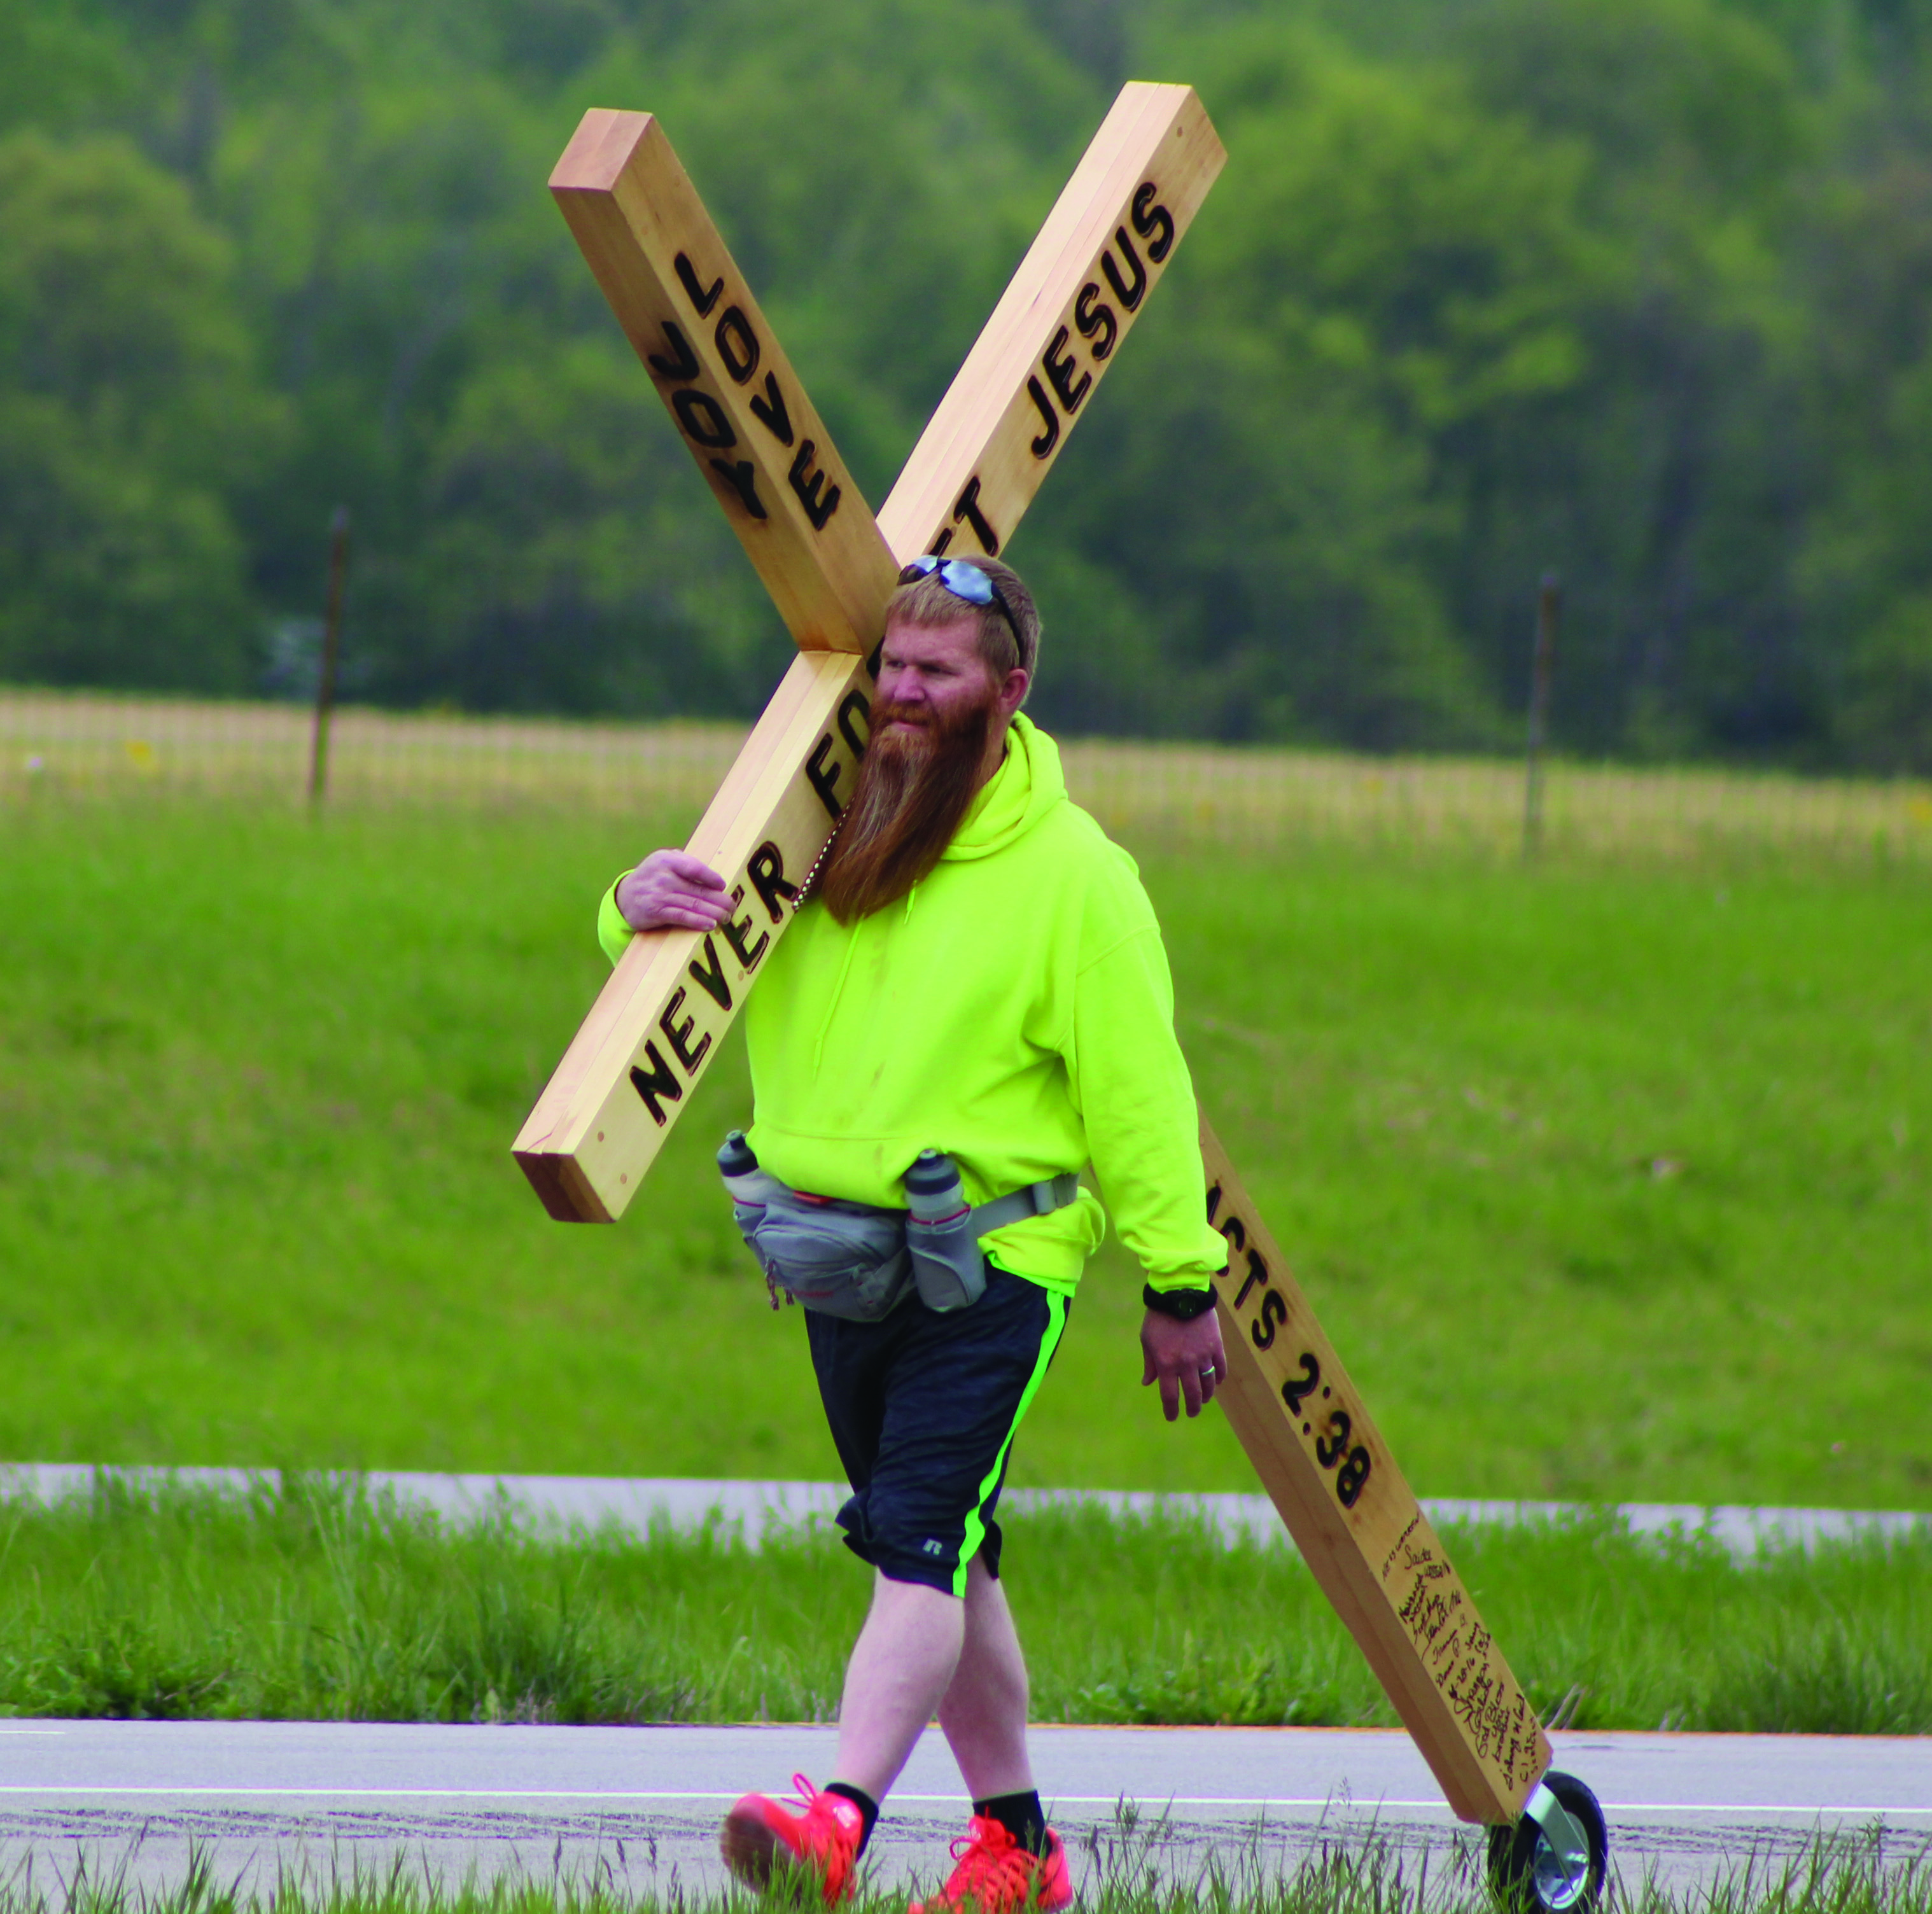 39-year old Jeremiah Wagner is on a cross-country trek, carrying this cross.  Photo by Patricia Beech.